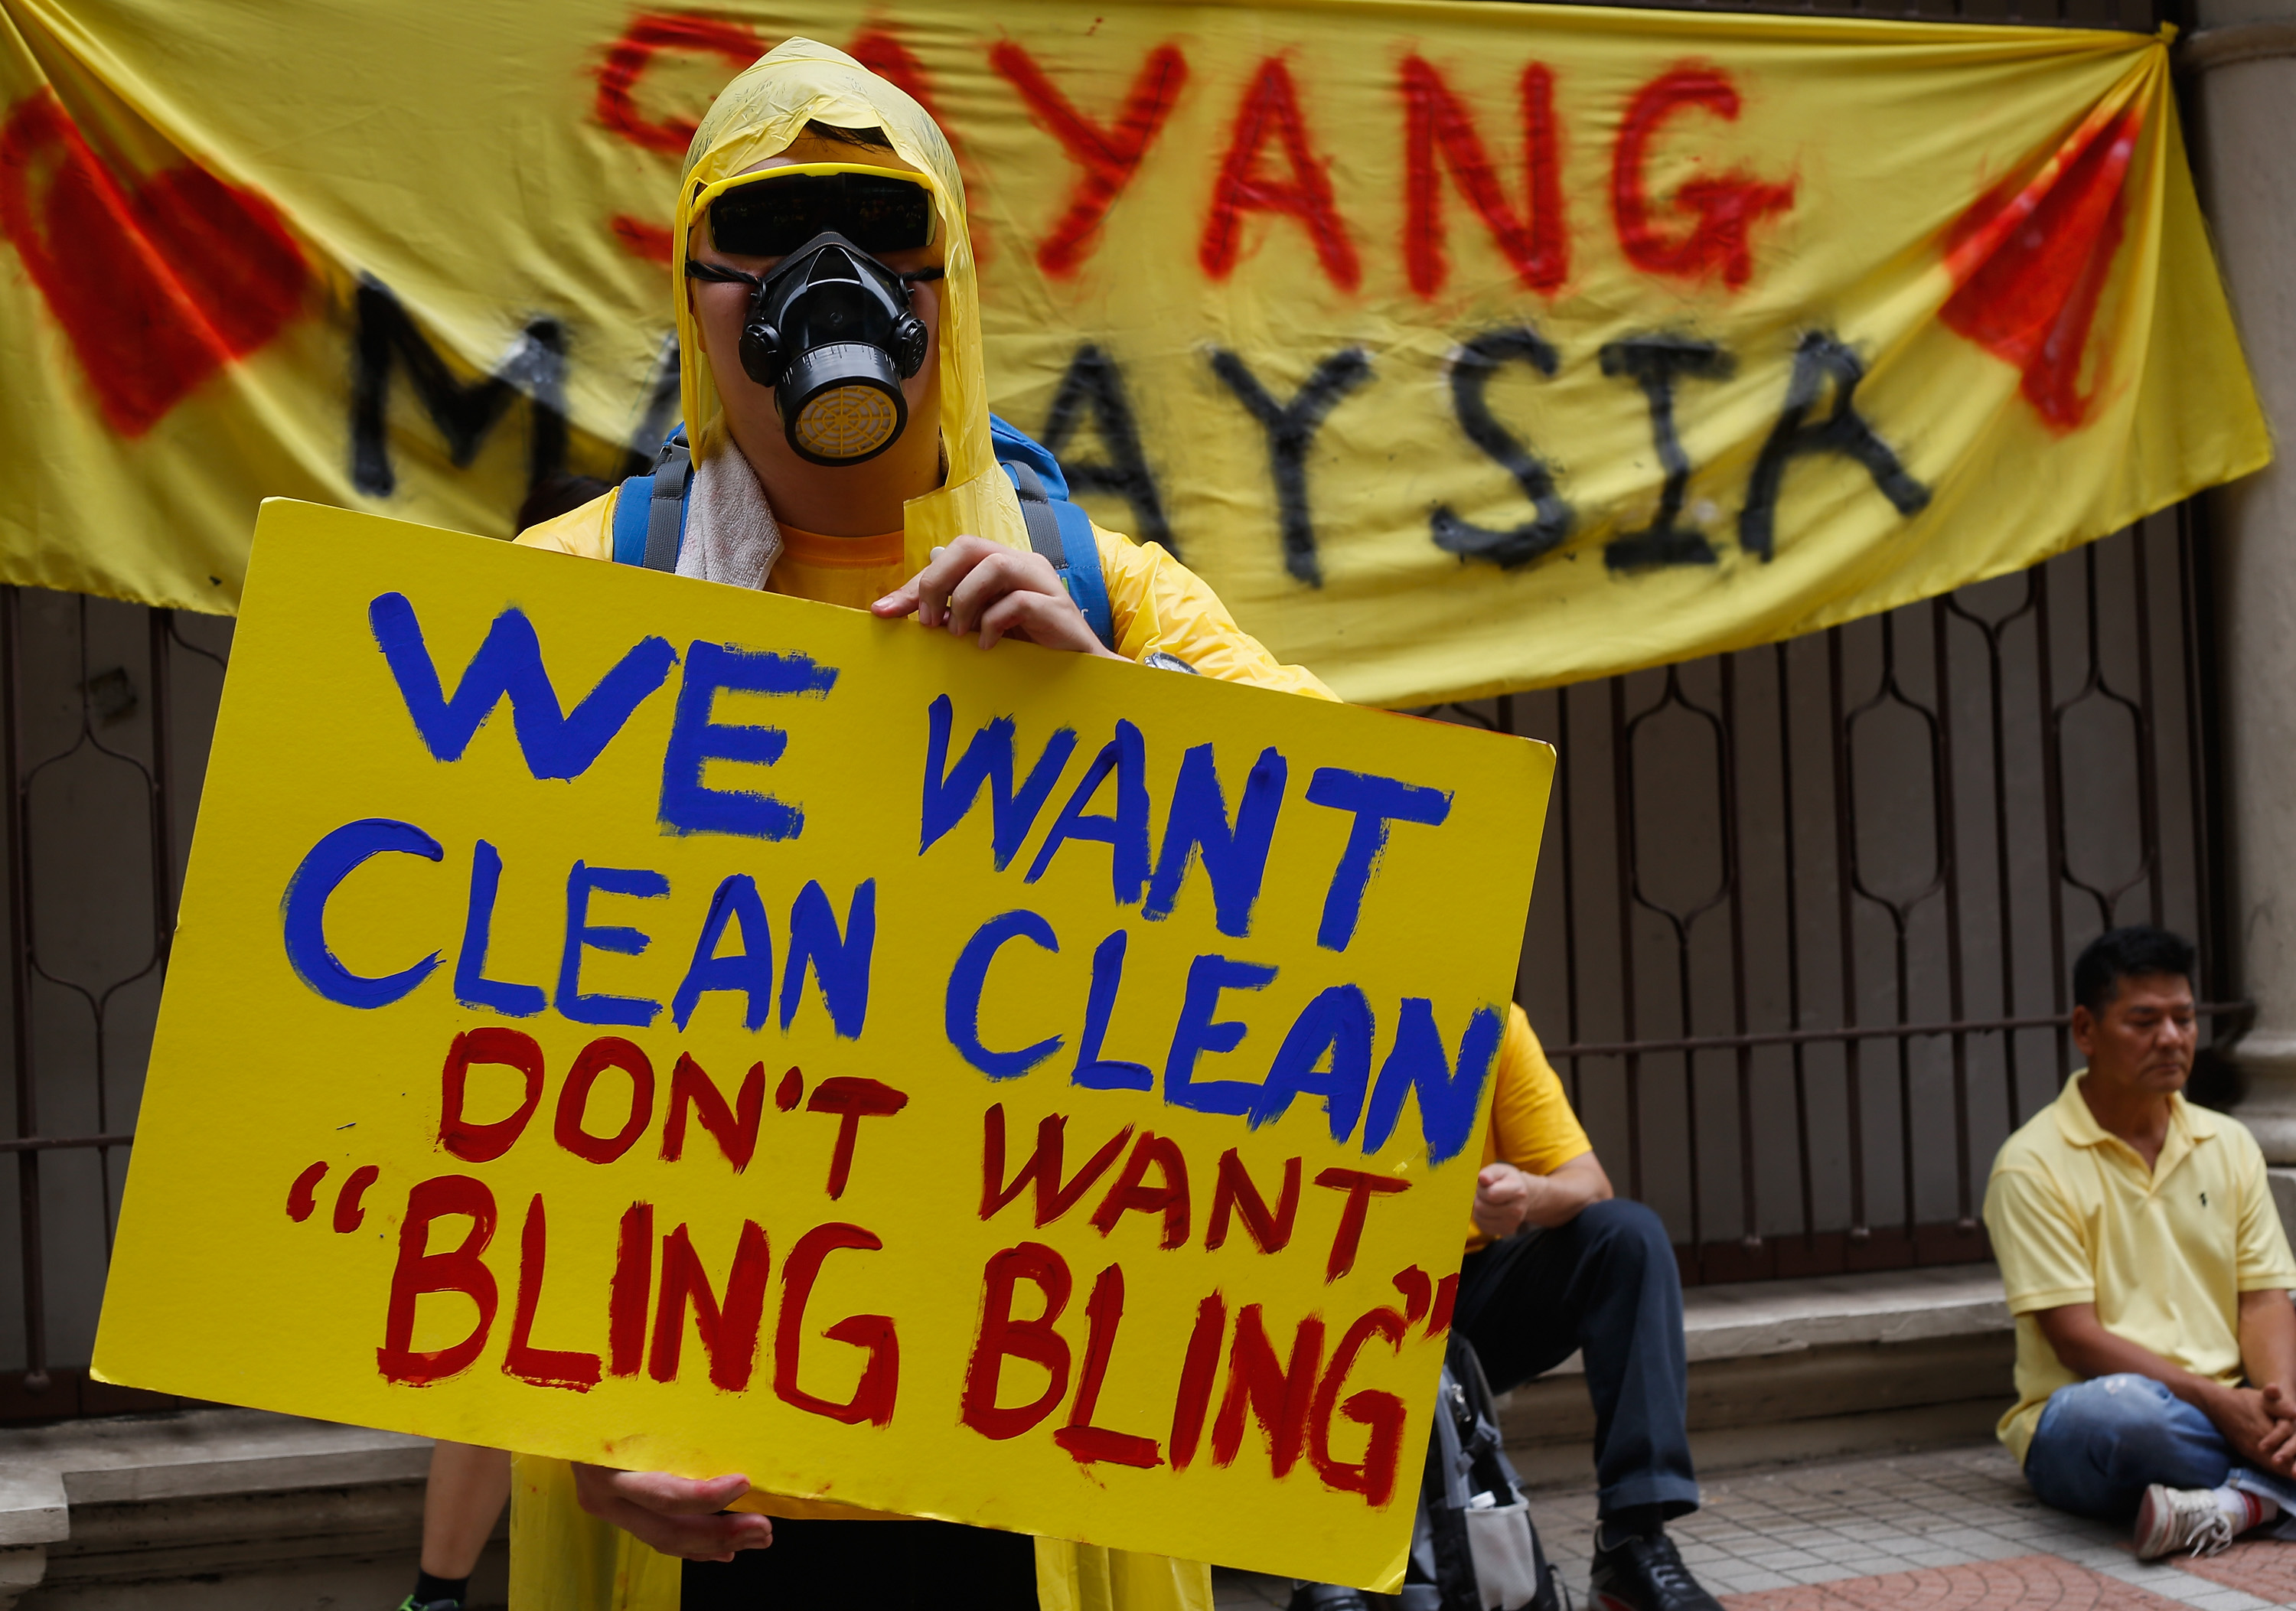 Protesters show a placard during a Bersih (Clean) rally calling for the resignation of Prime Minister Najib Razak on Aug. 30, 2015, in Kuala Lumpur. Najib has become embroiled in a scandal involving state-fund debts and allegations of deposits totaling $700 million paid to his bank account